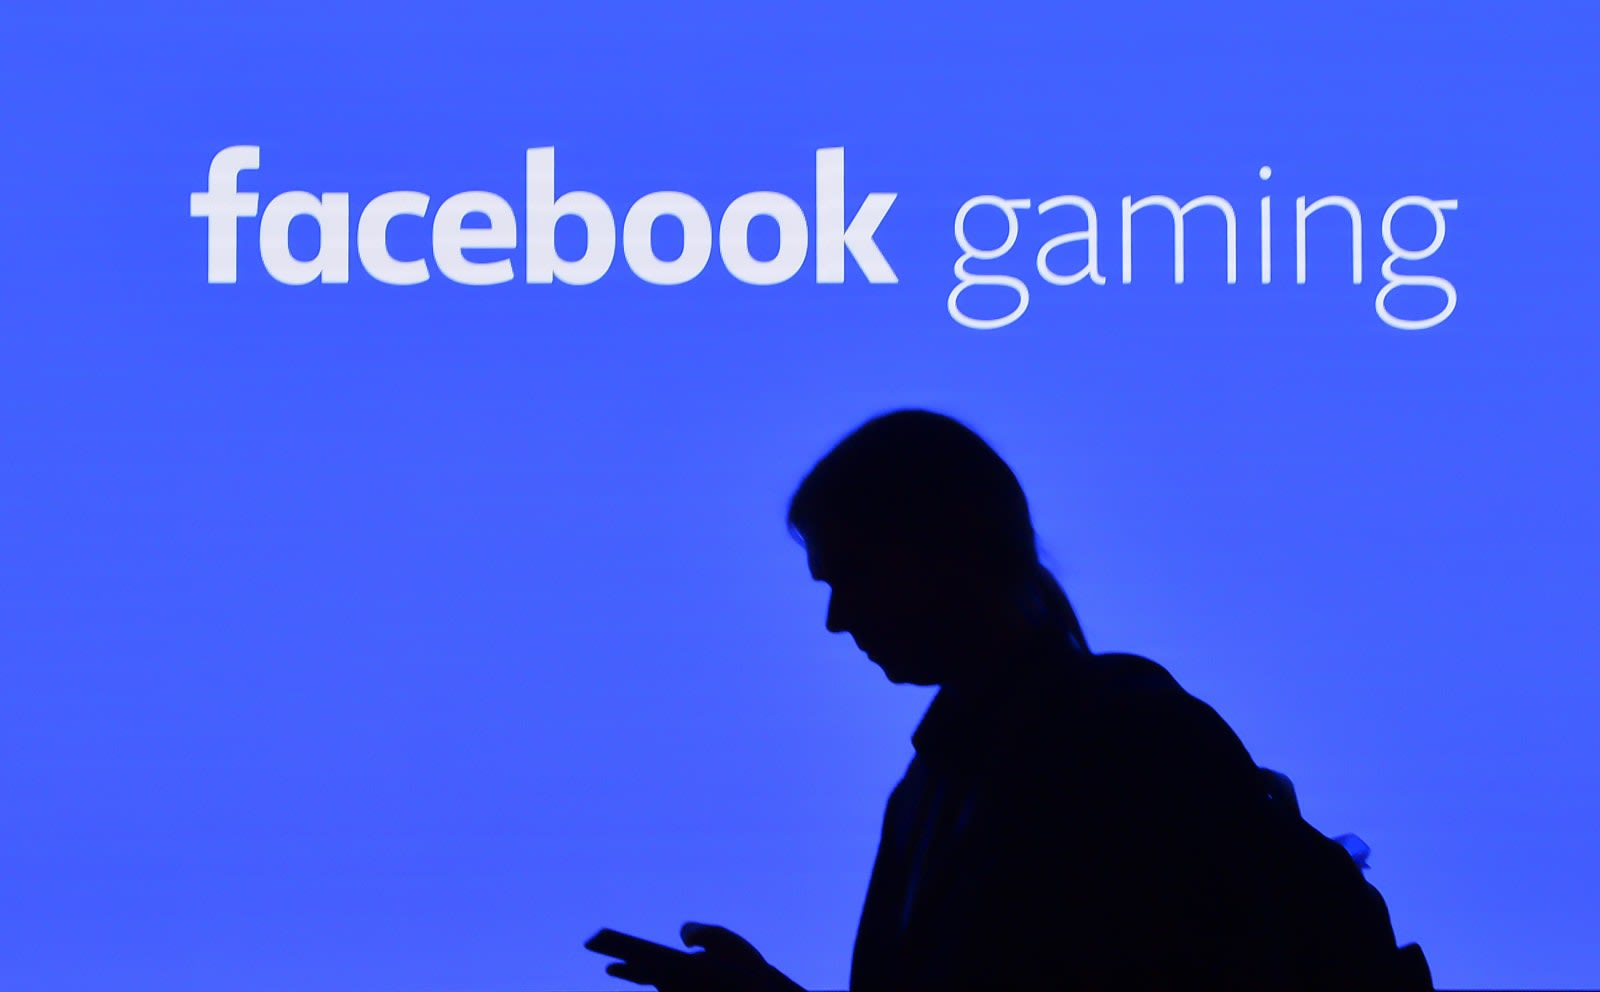 Twitch loses another top streamer, this time to Facebook